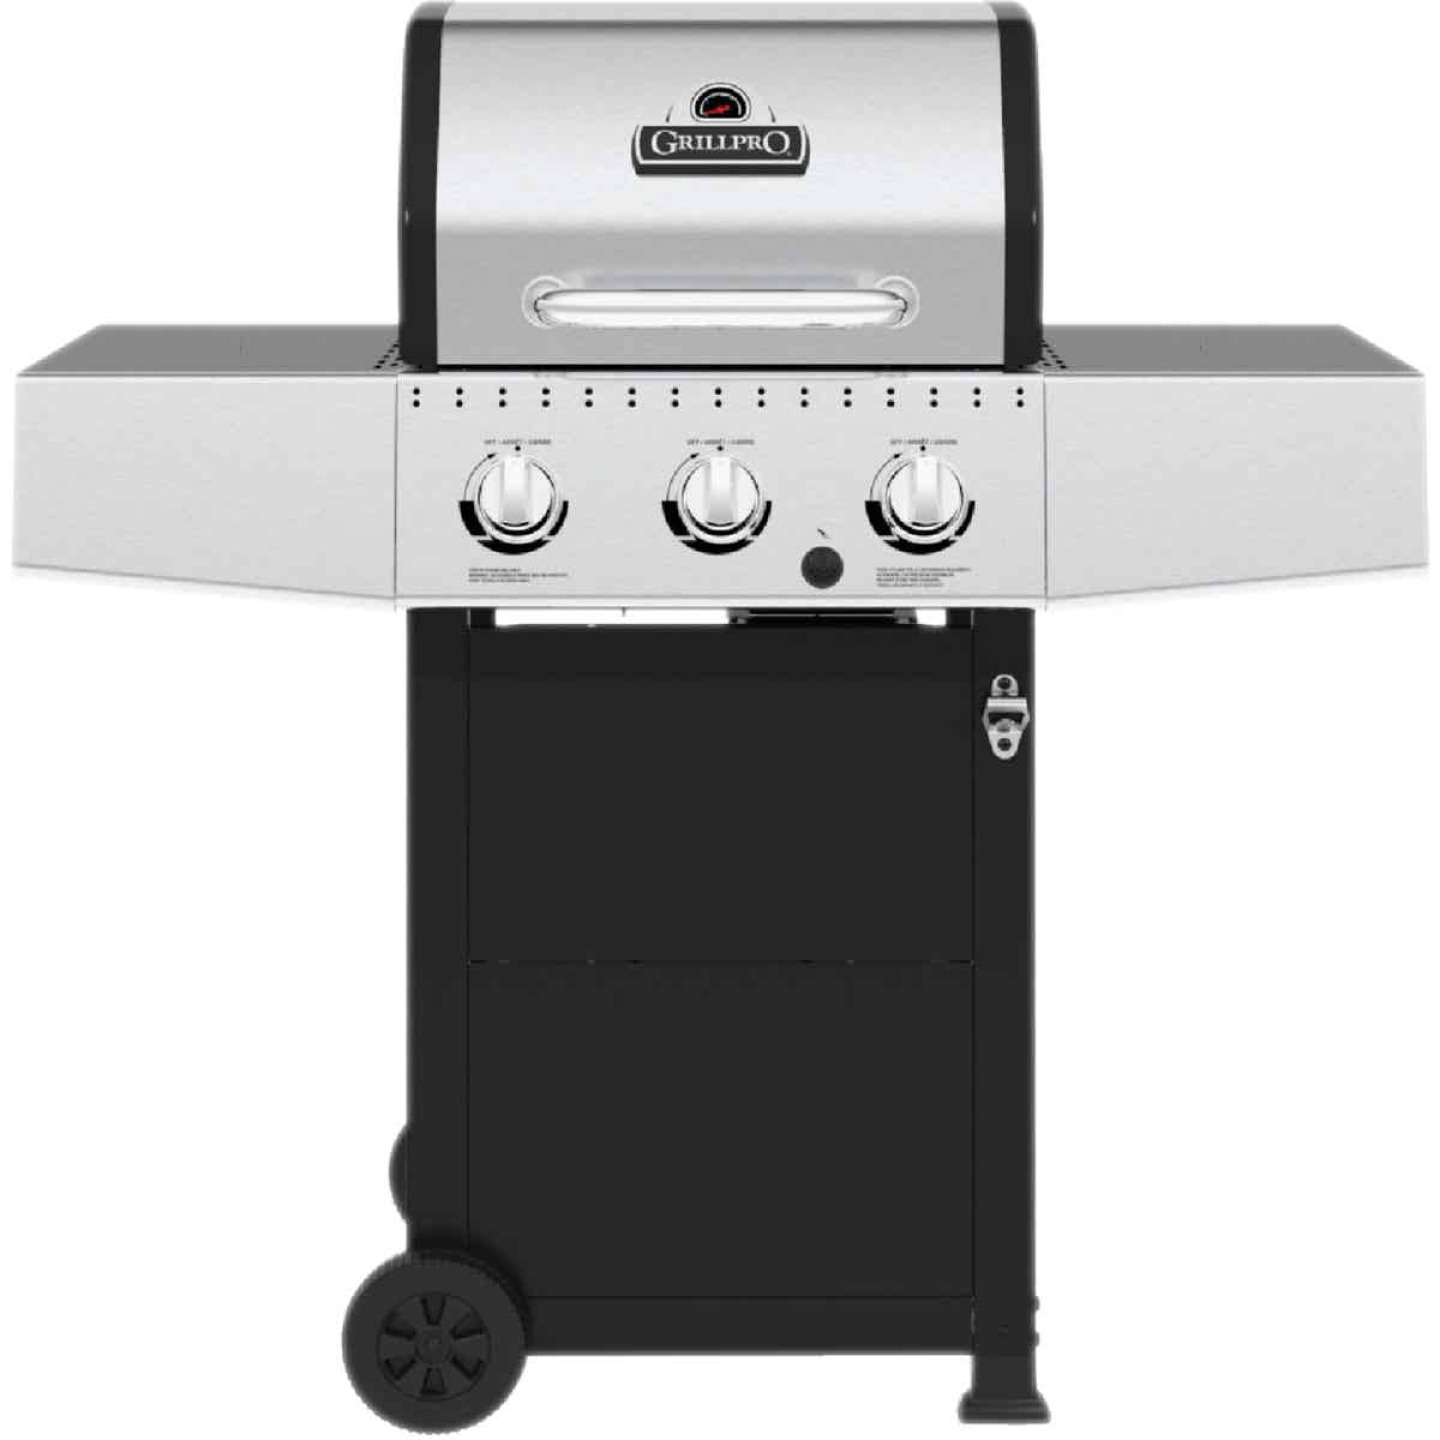 GrillPro 3-Burner Stainless Steel & Black 30,000 BTU LP Gas Grill Image 1